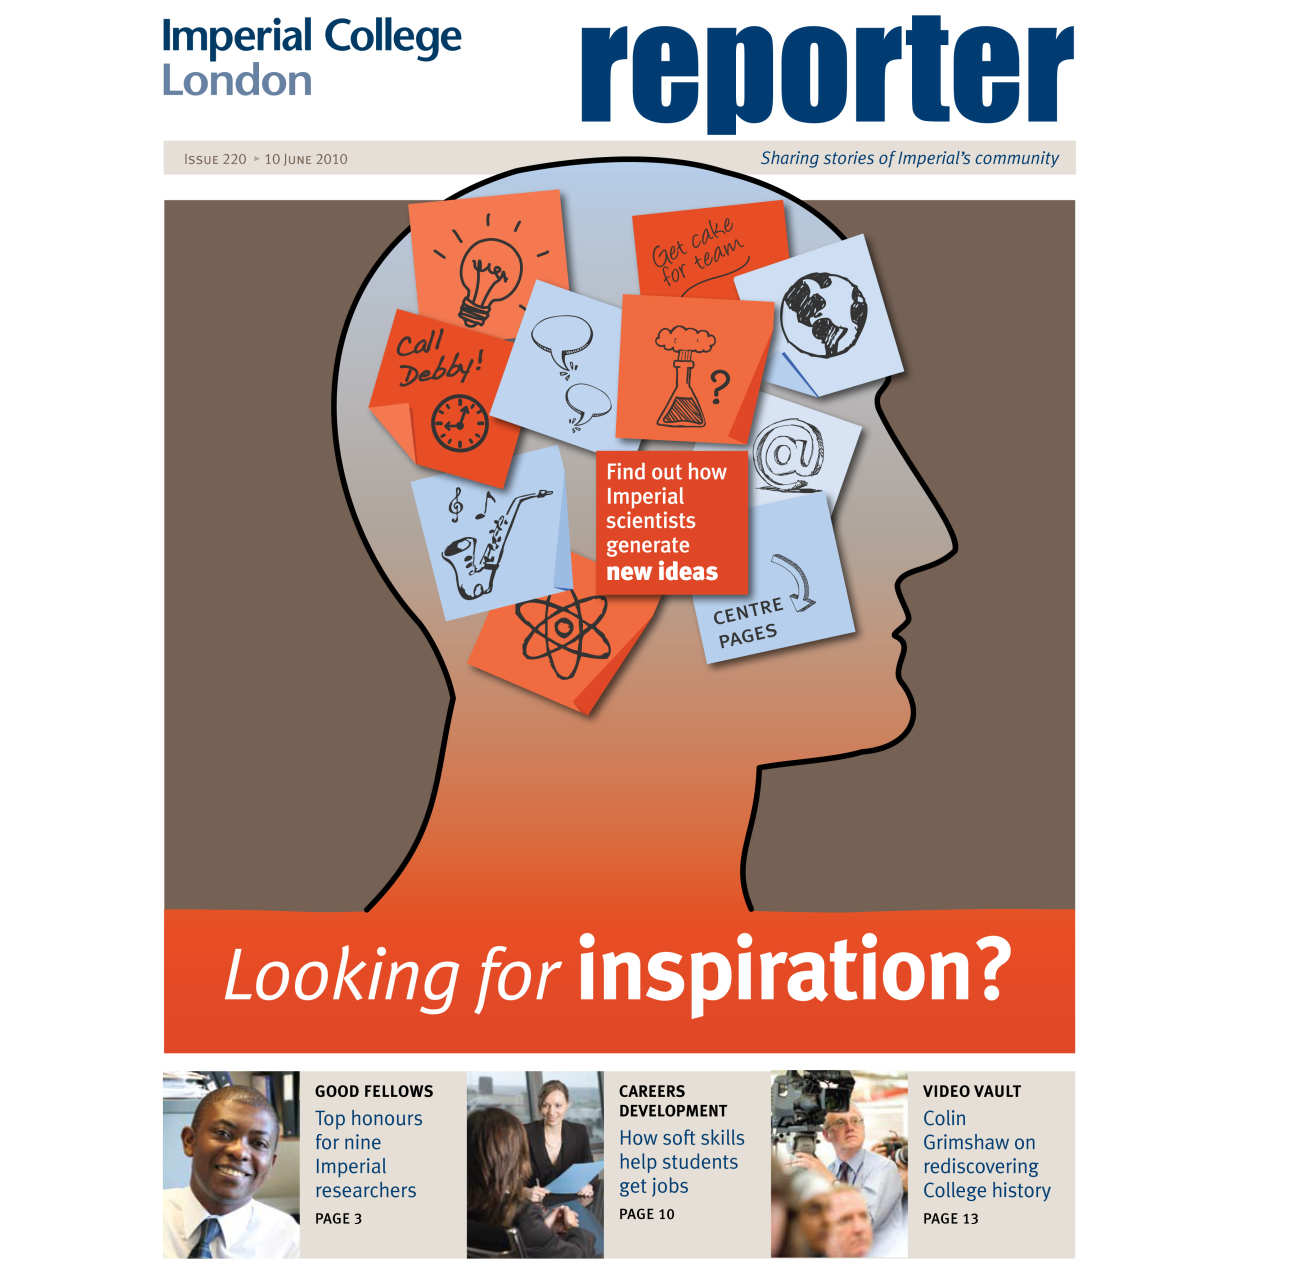 Issue 220 - 10 June 2010